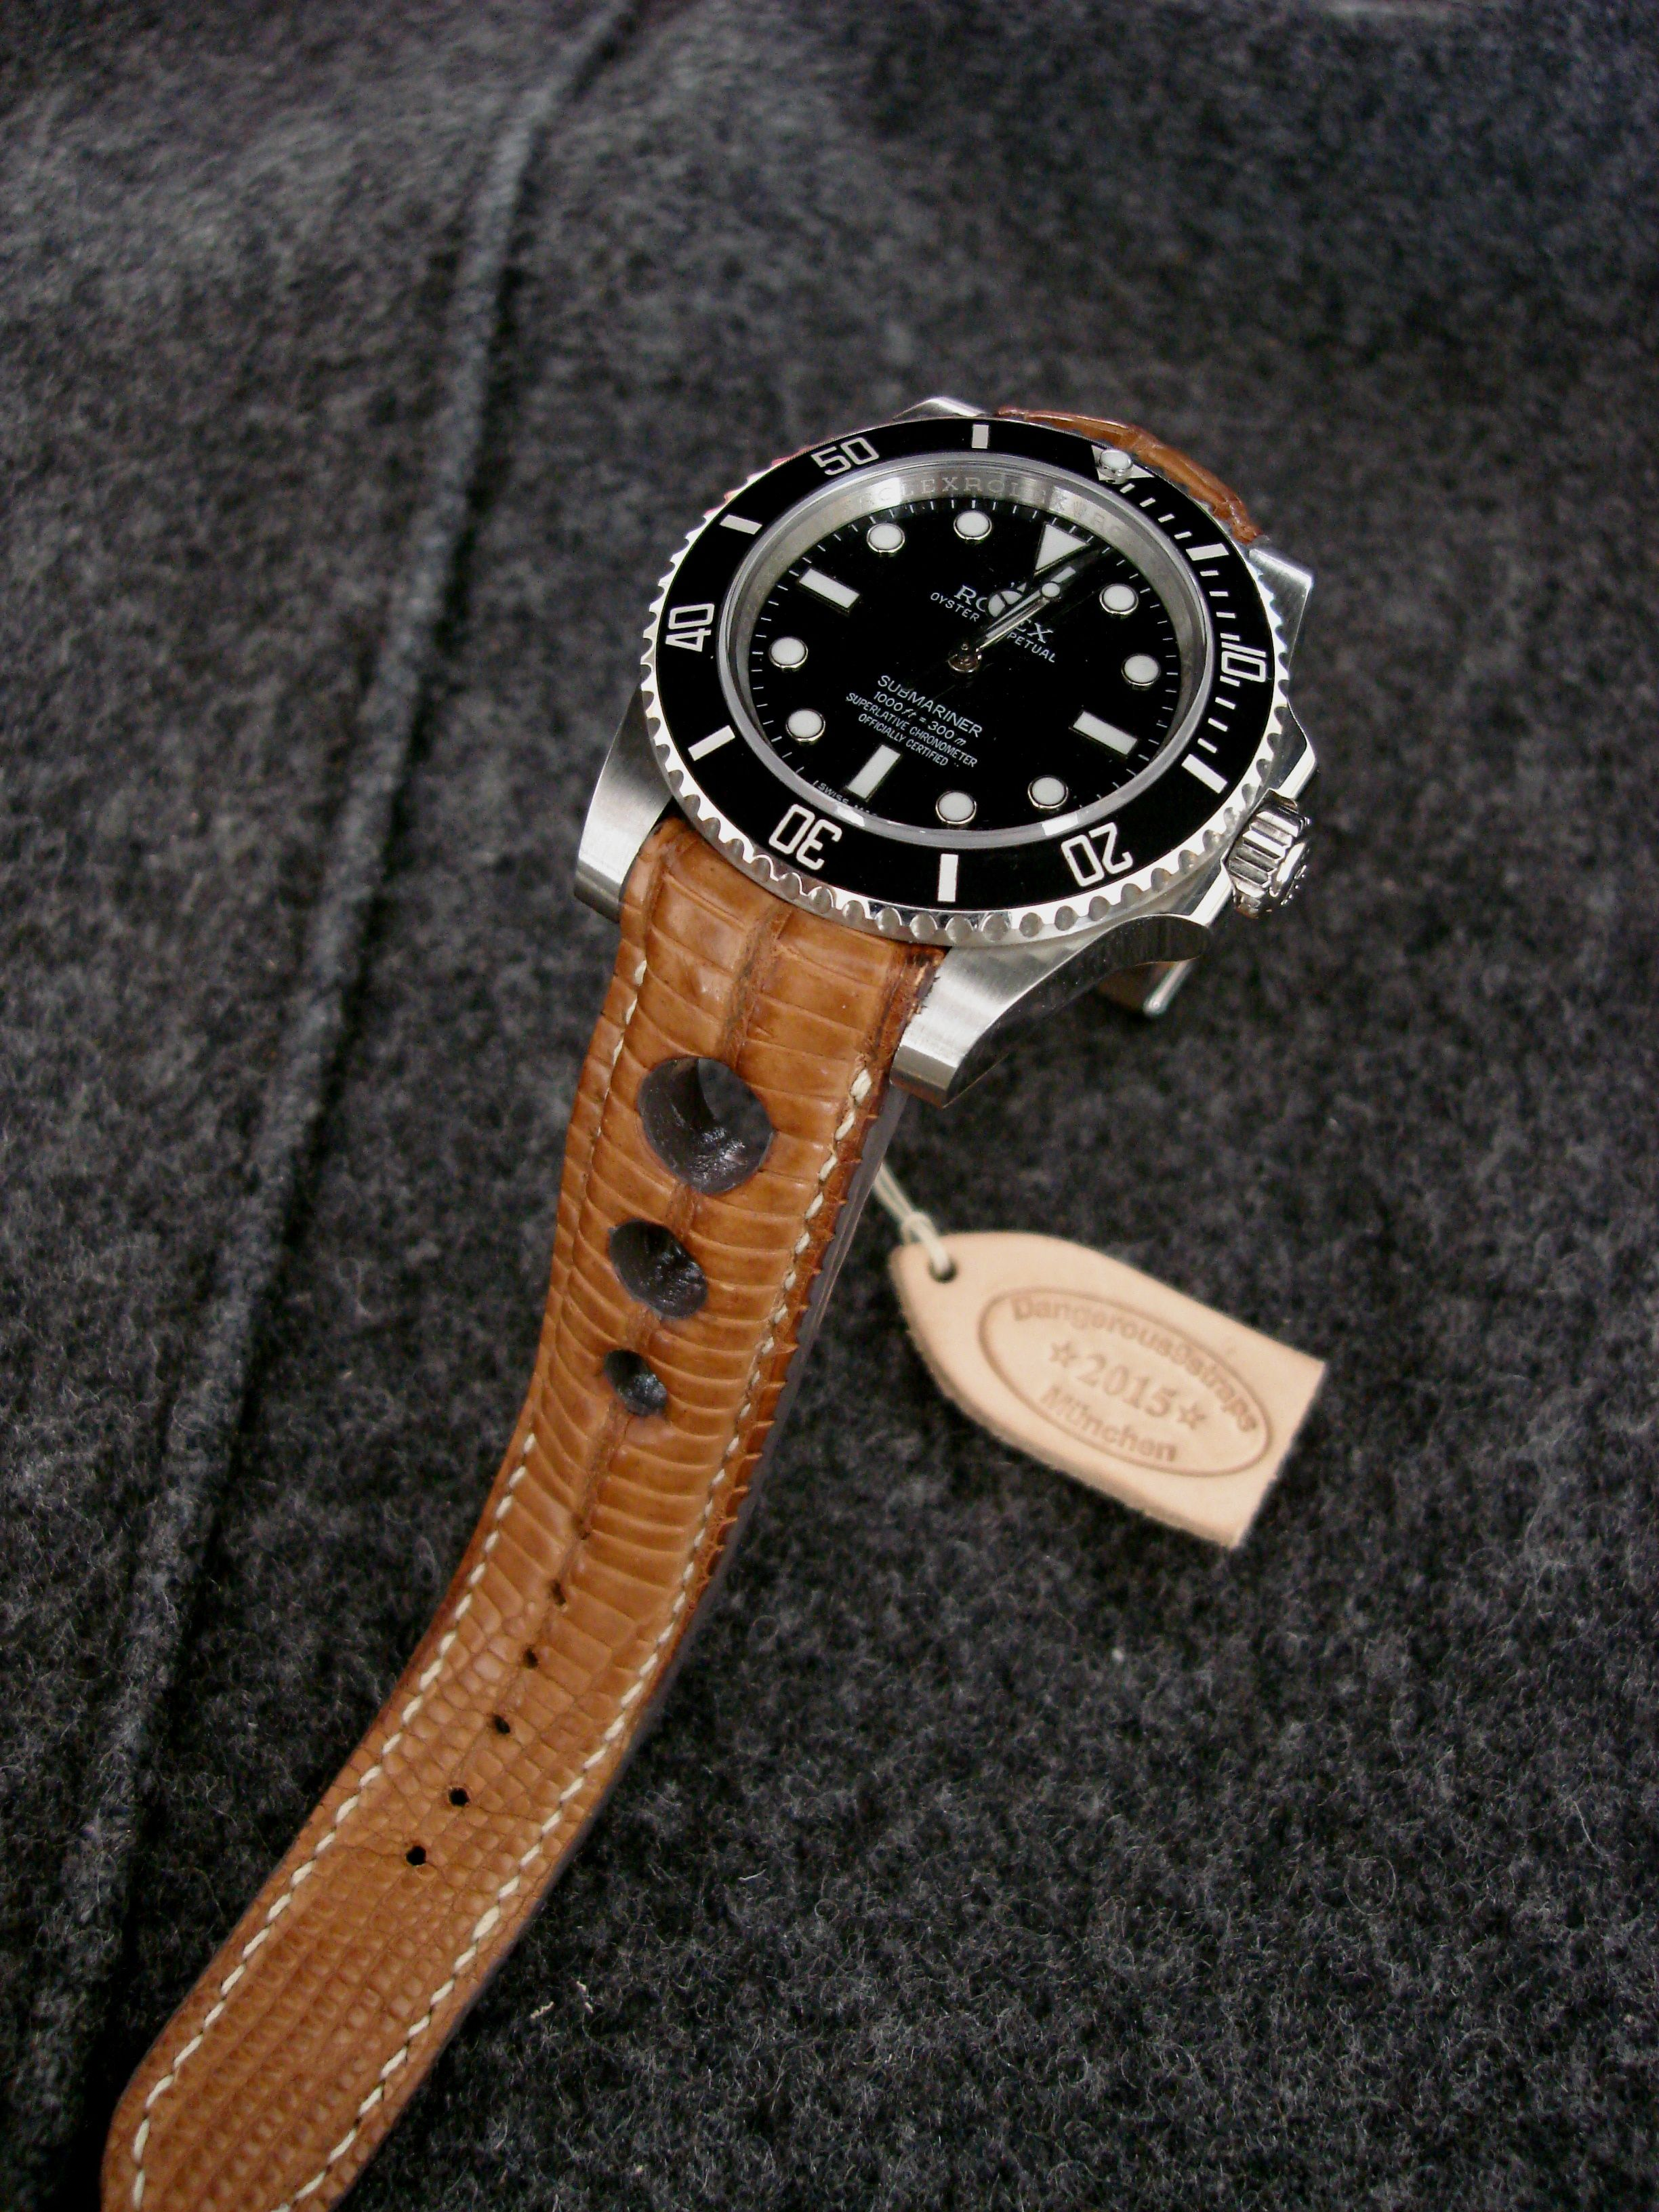 Rolex Sub No Date On Racing Tan Teju Rally Strap Montre